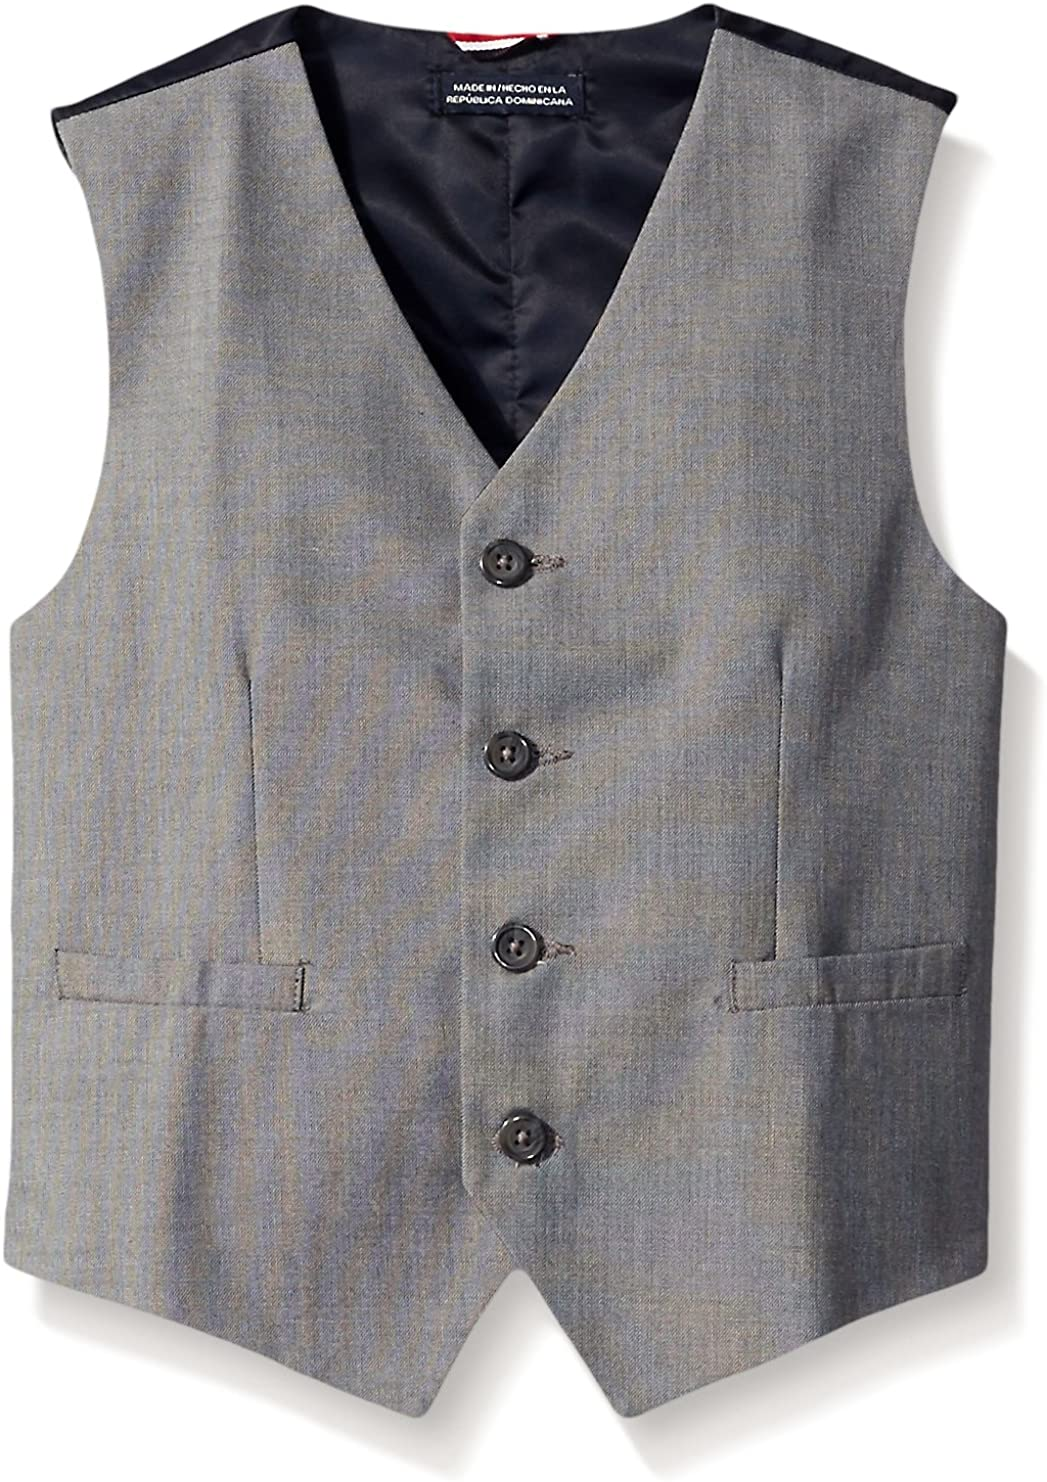 Tommy Limited time for free Ranking TOP11 shipping Hilfiger Boys' Vest Suit Sharkskin